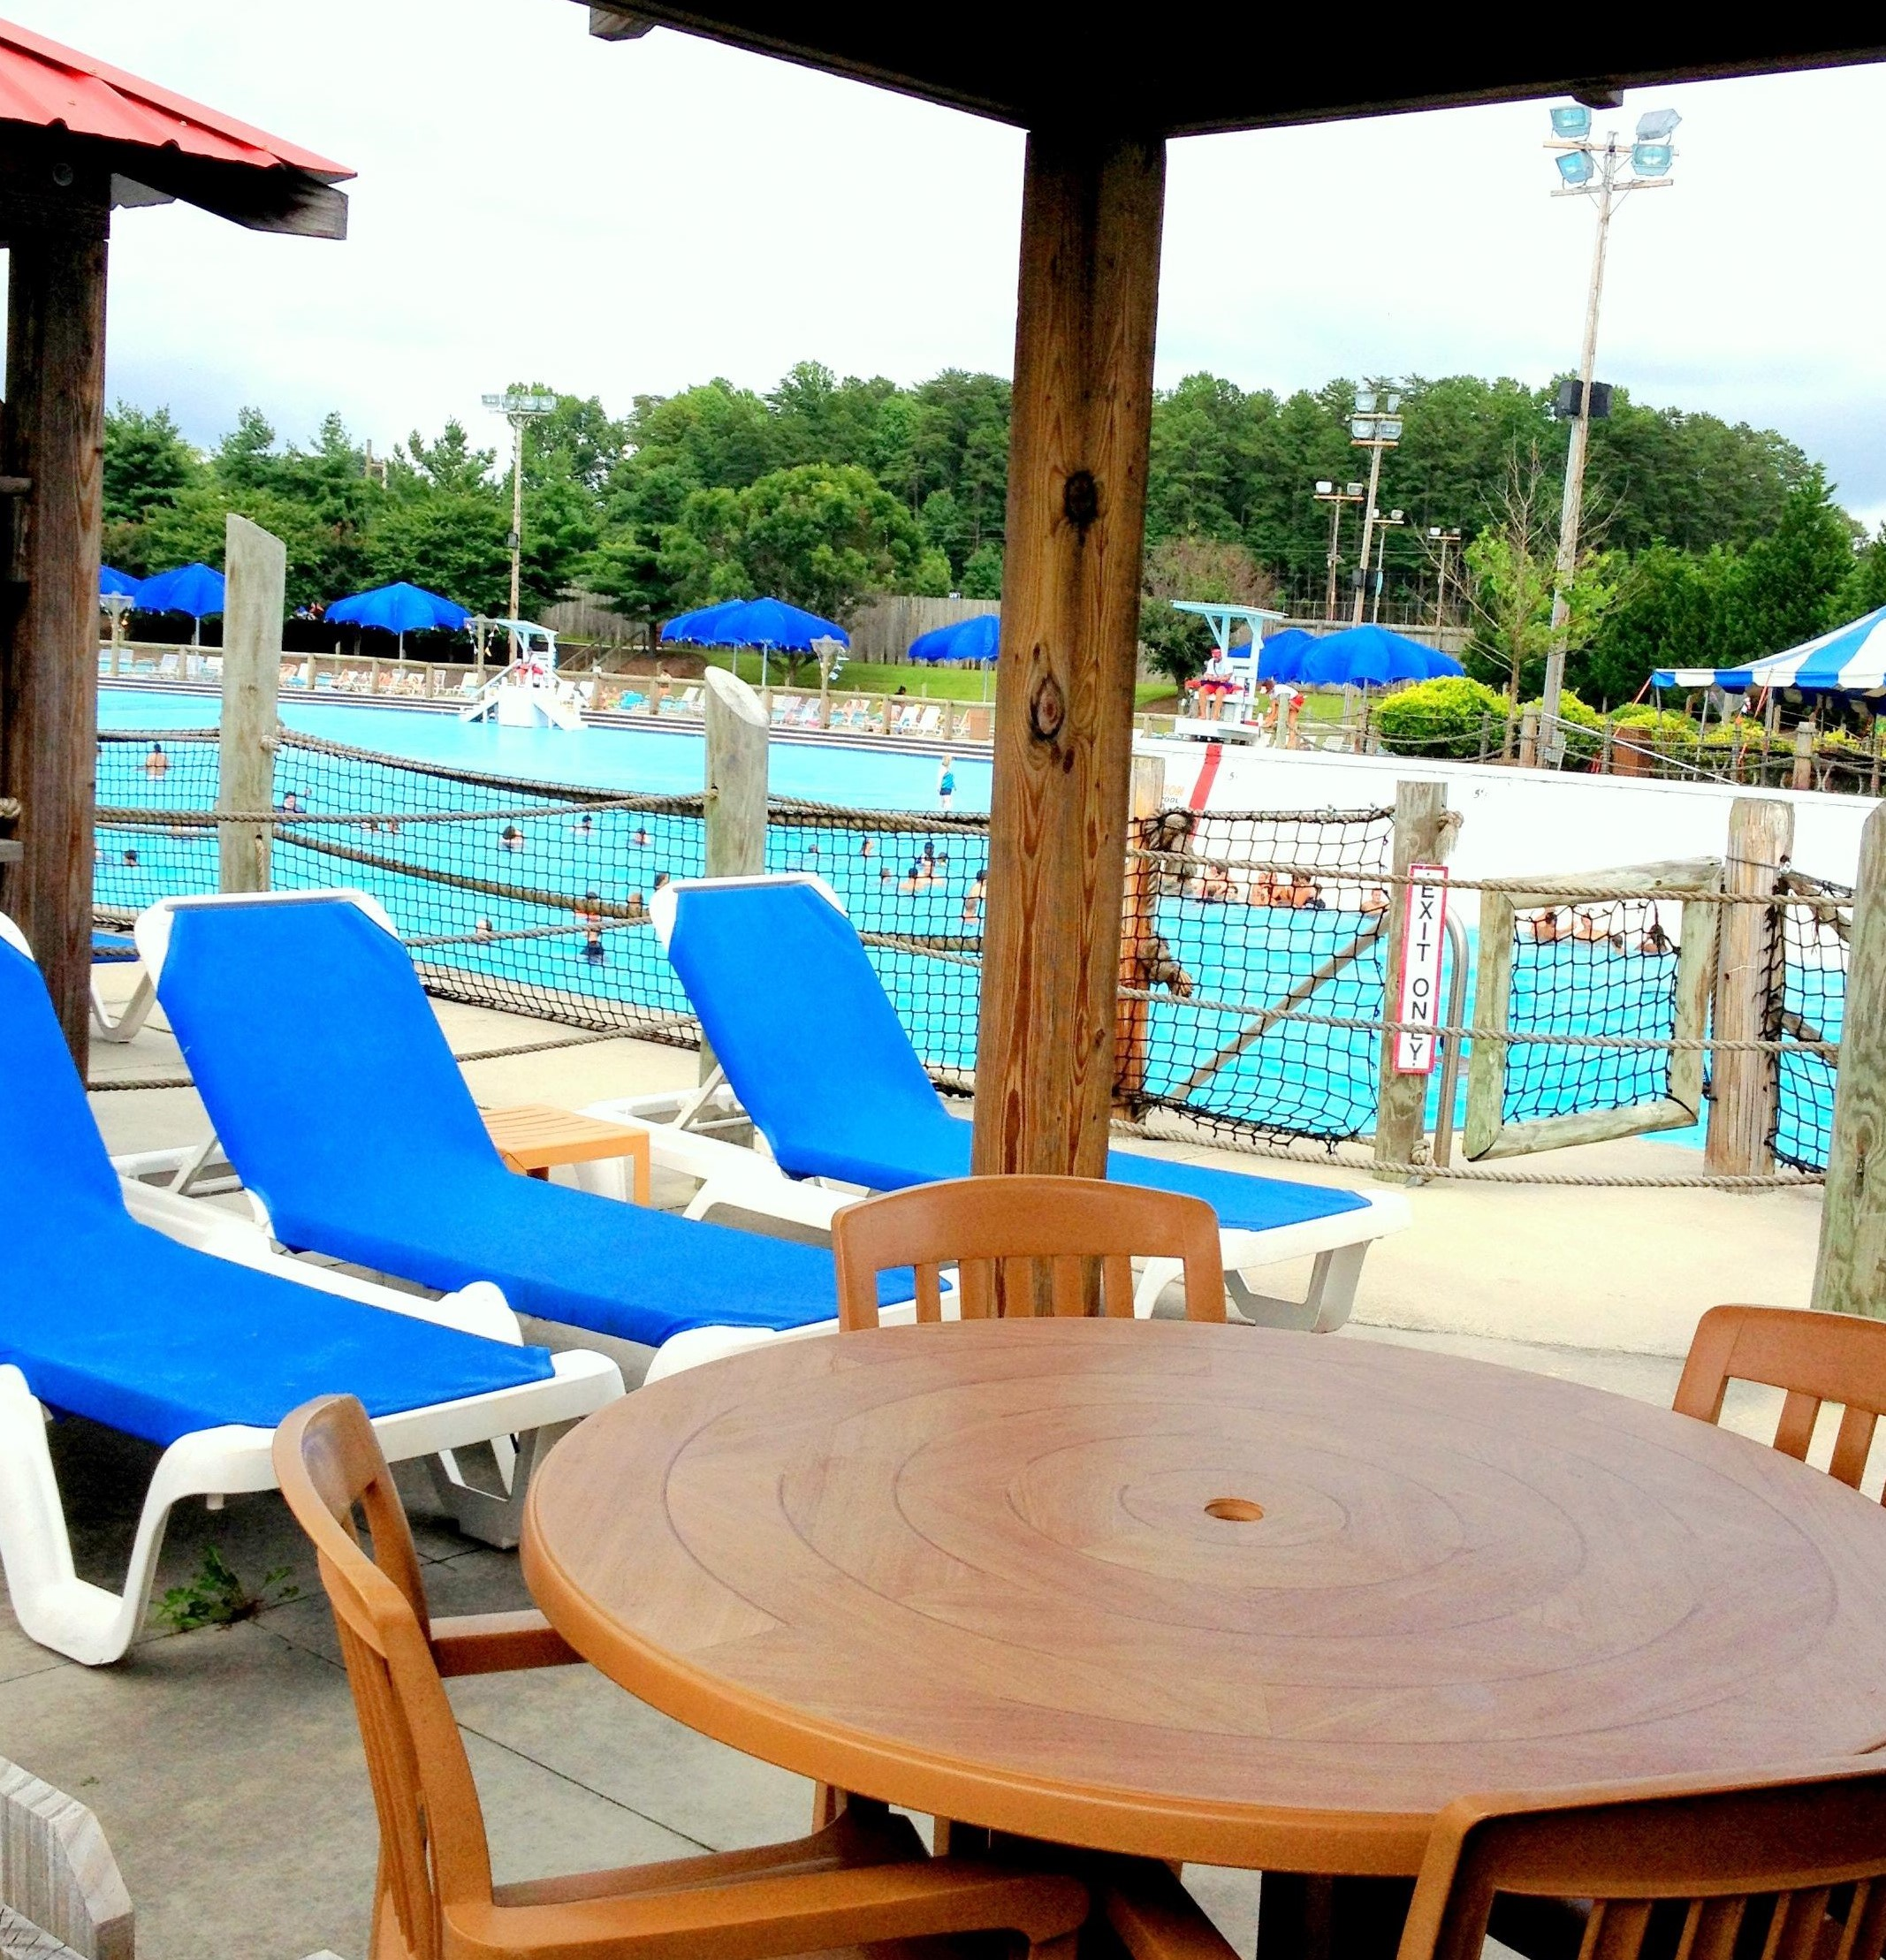 Cabana located in Happy Harbor with chairs and table